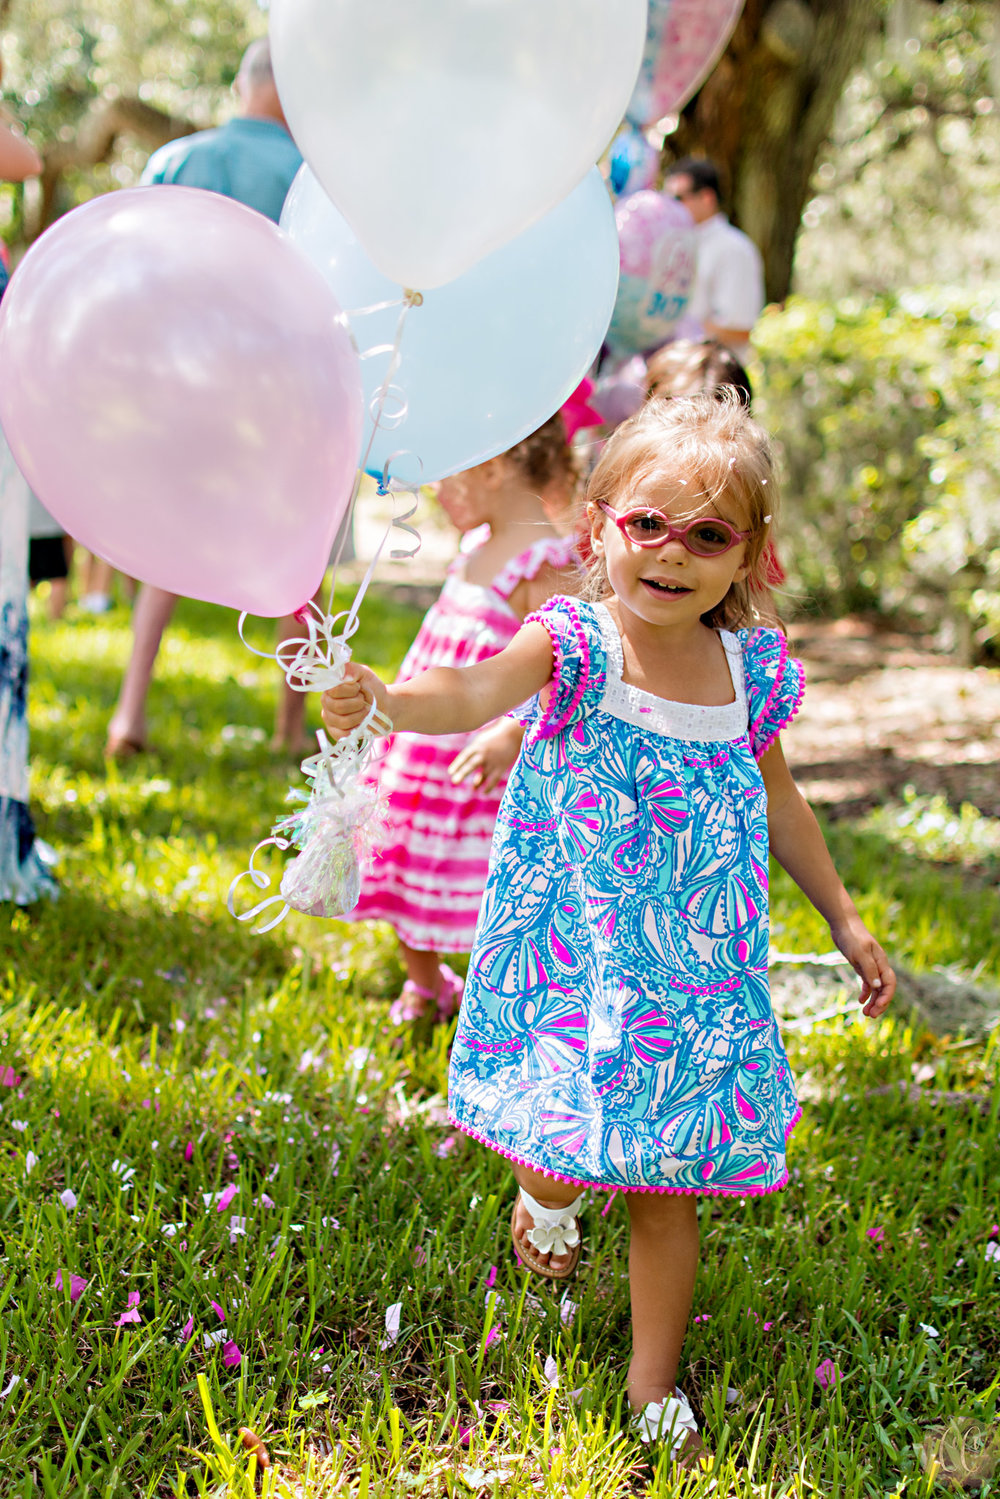 Big sister runs with balloons at her parents gender reveal party at The Tampa Yacht Club, photos taken by Carlie Chew Photography